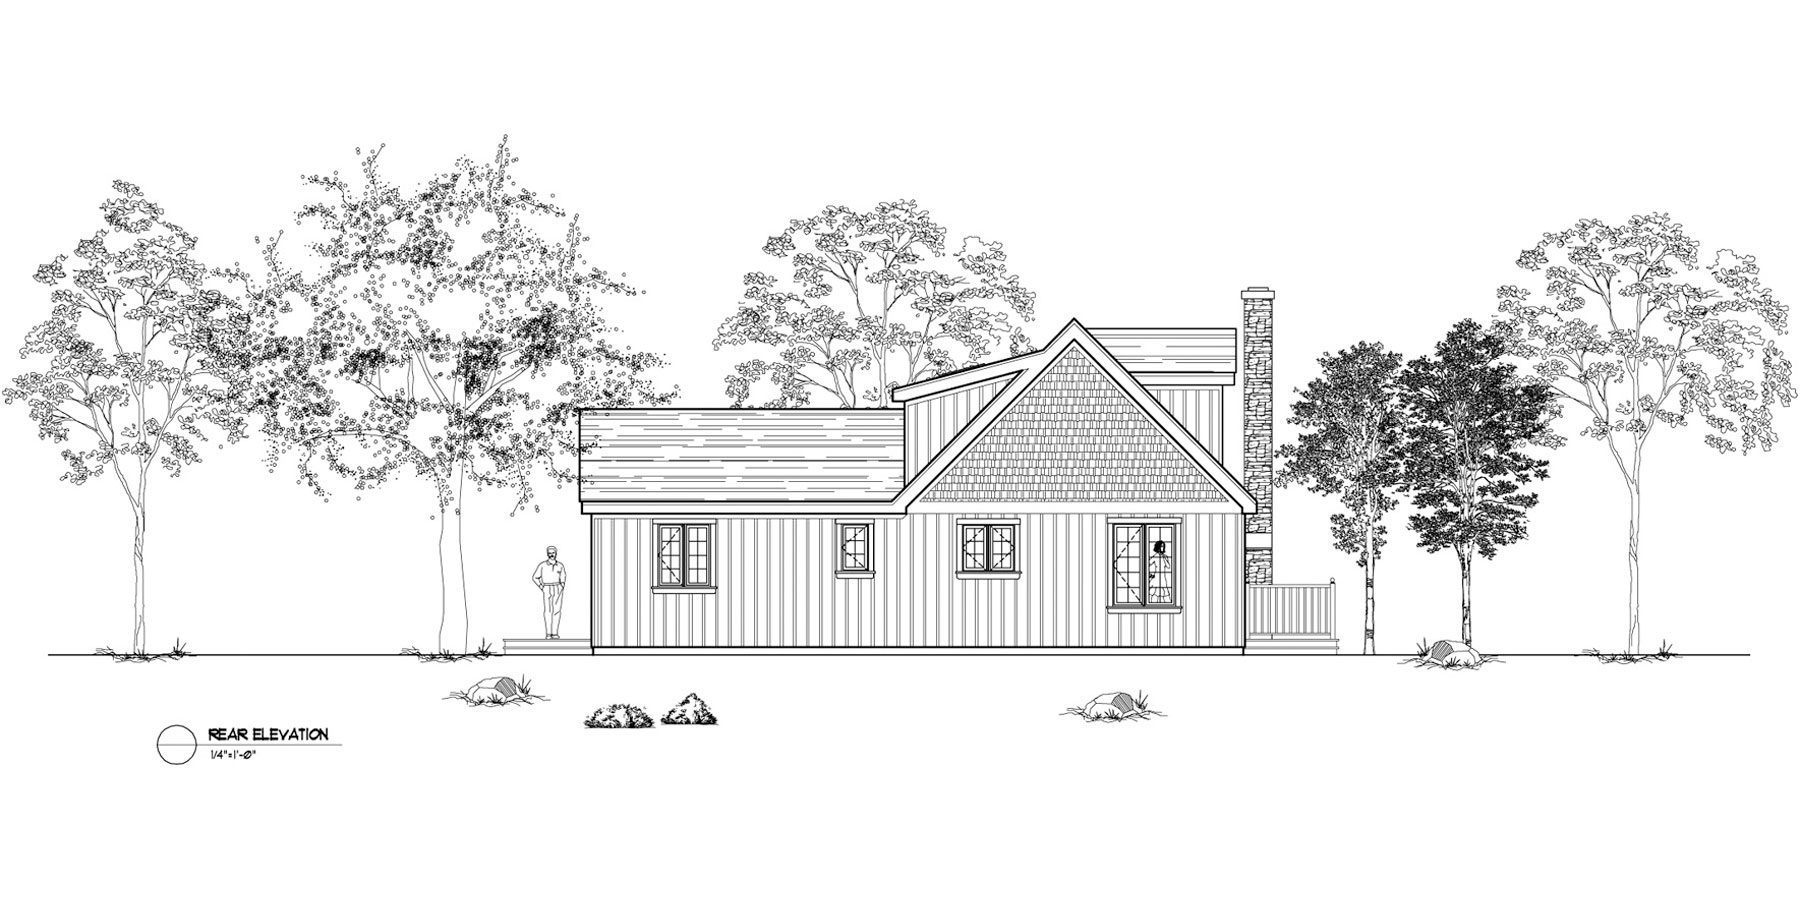 Normerica Timber Frames, House Plan, The Simcoe 3239, Rear Elevation